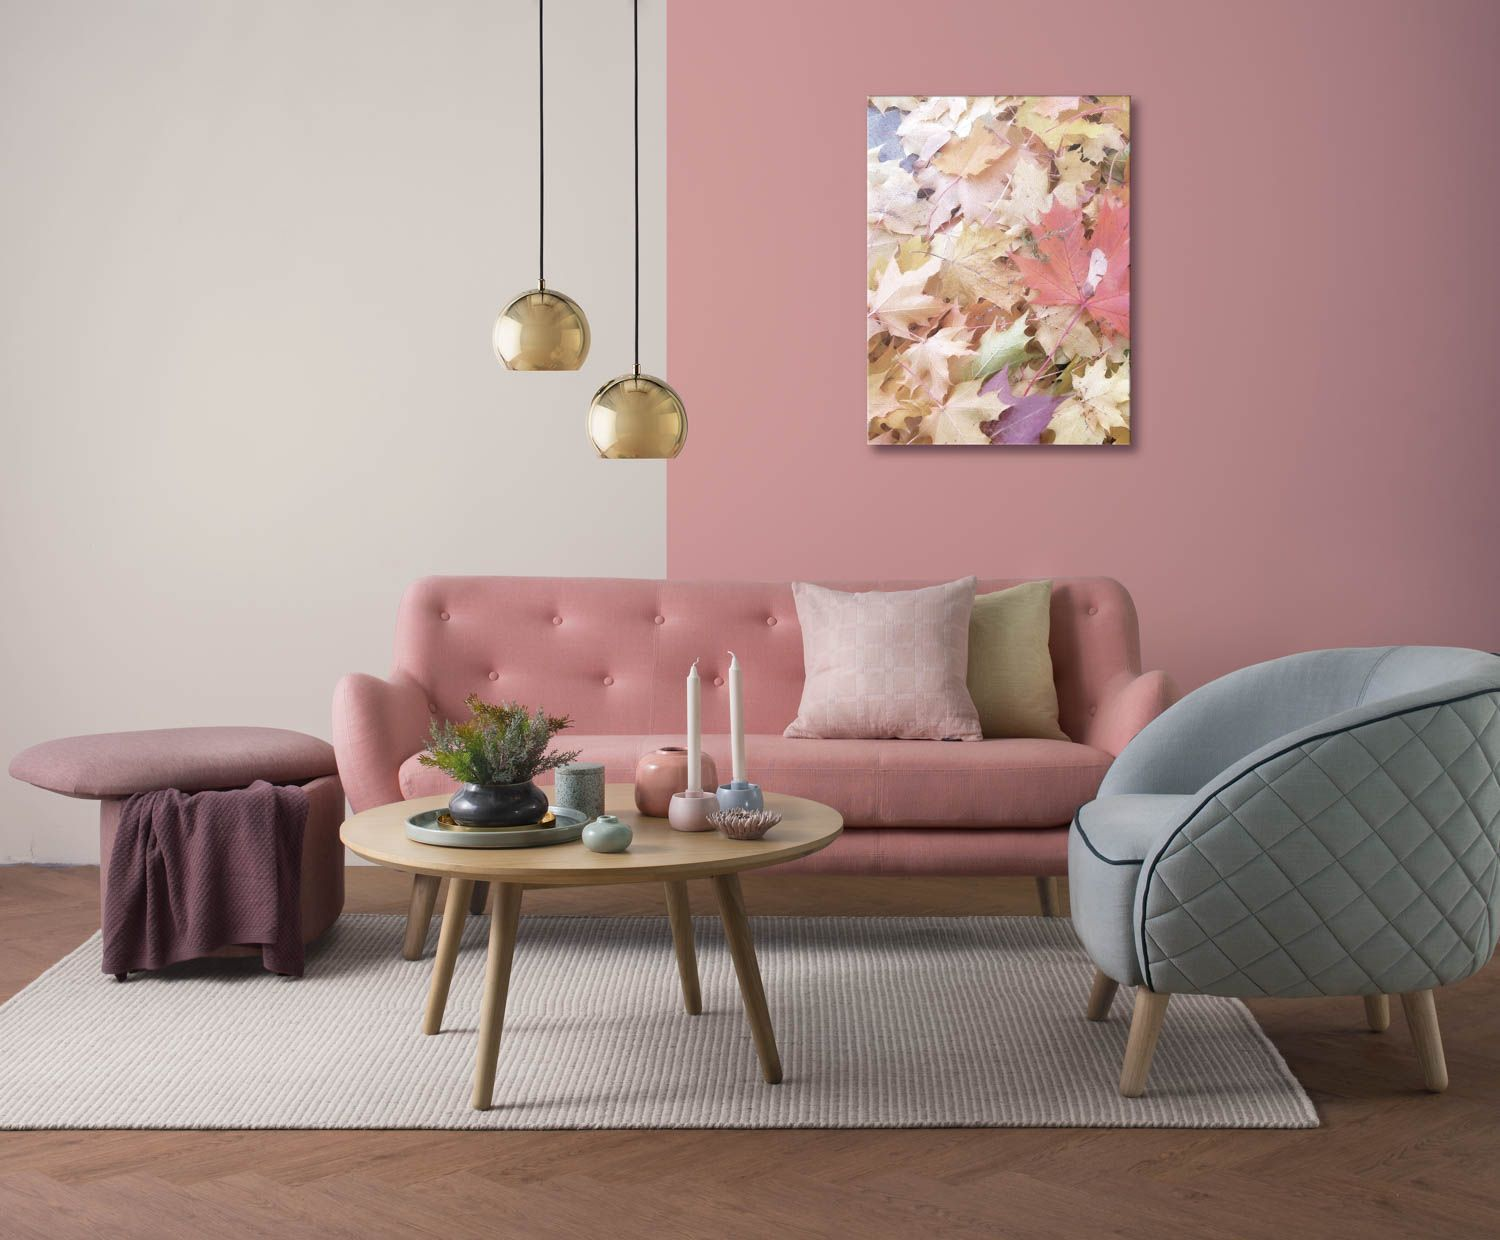 Pin by lina liu on l | Pink living room, Pink couch living ...